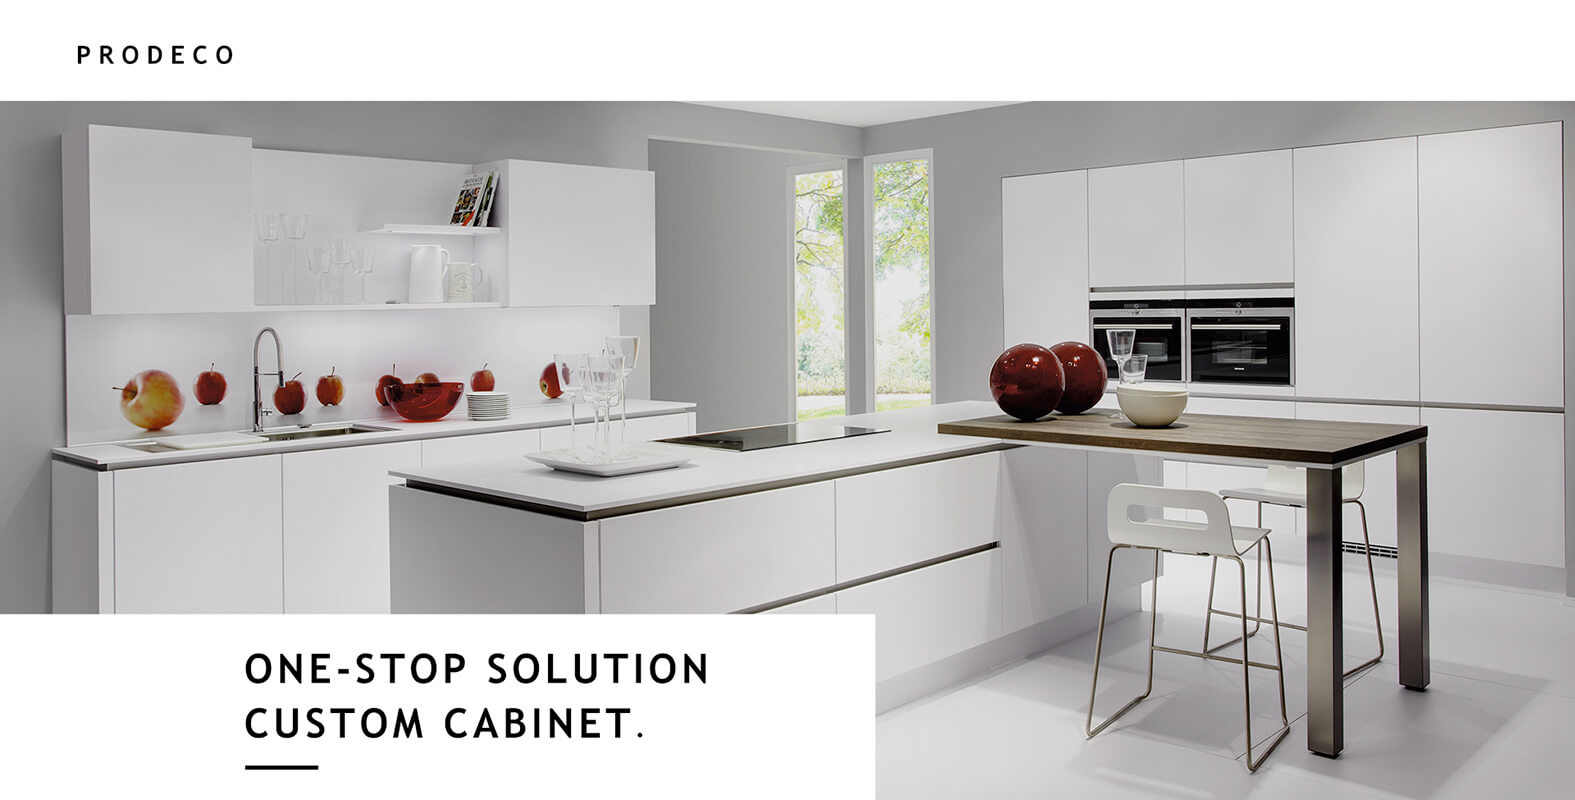 2019 Modern Kitchen Cabinet Style Concept Professional